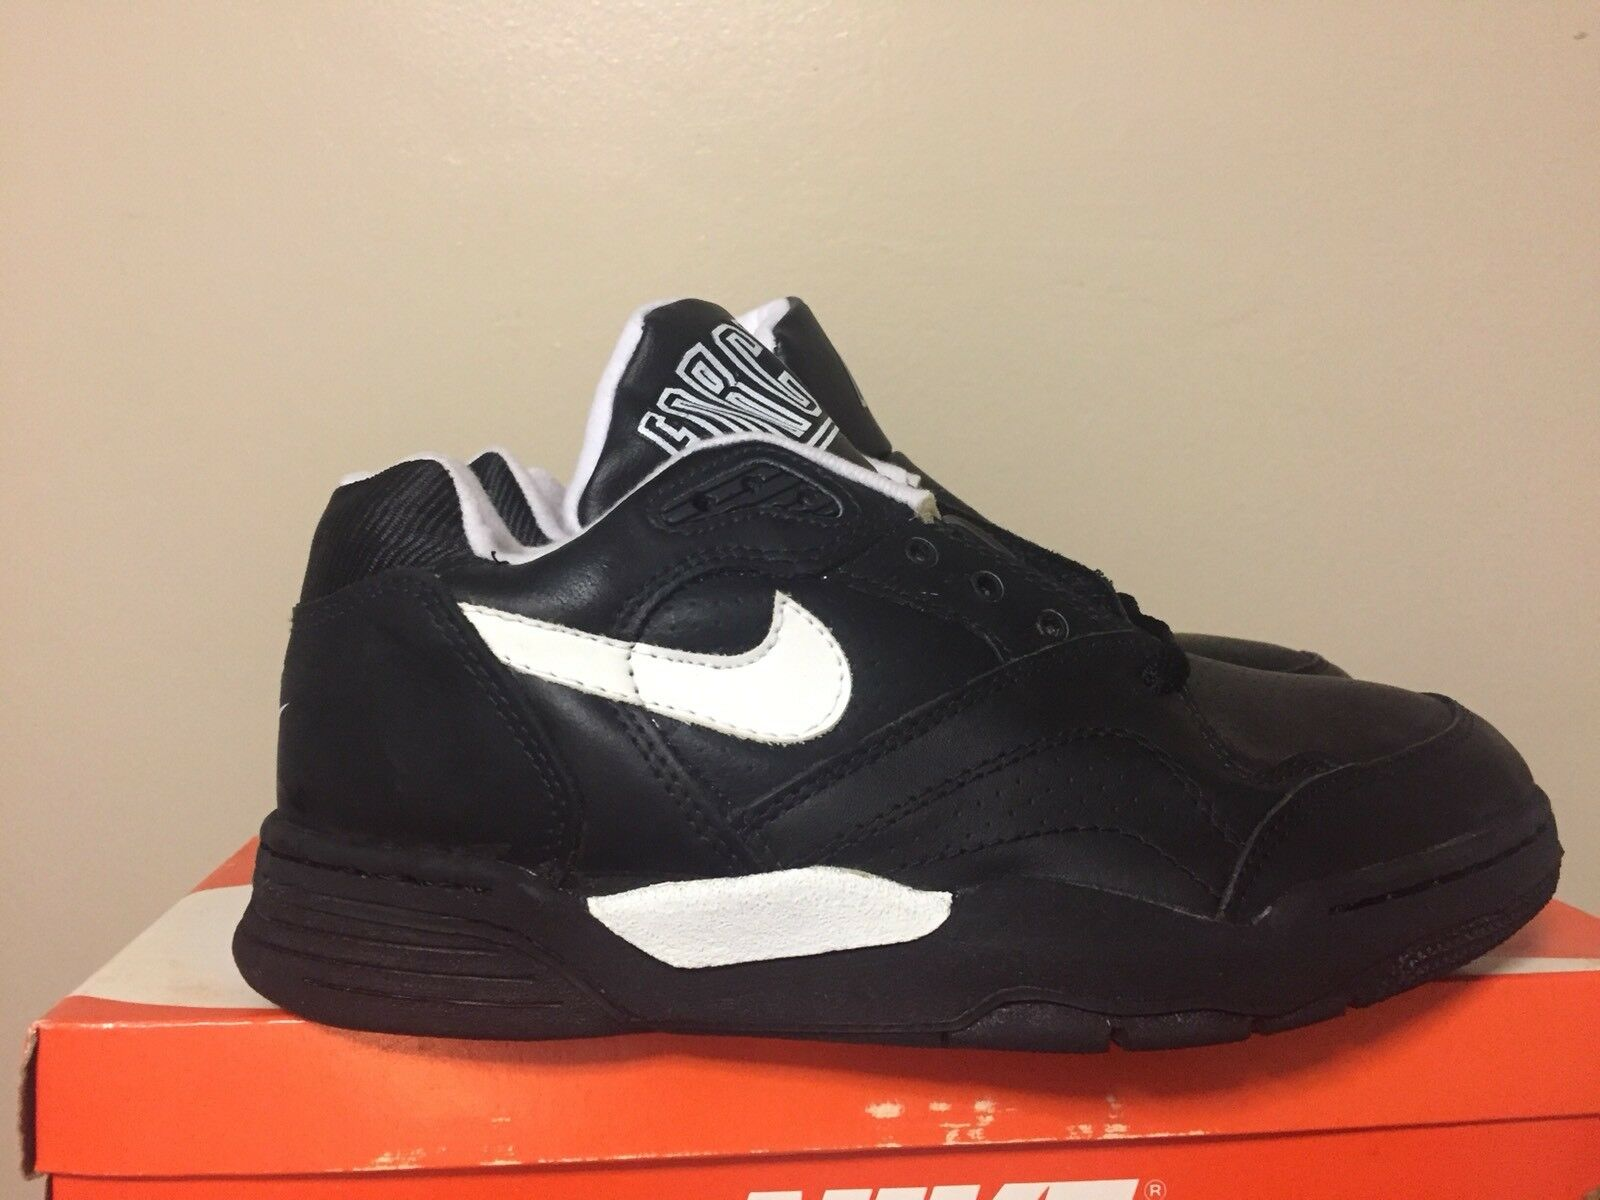 Vintage 1991 Nike Nike Nike Quantum Force Low Sz. 7 US Black White DS Pippen 015746